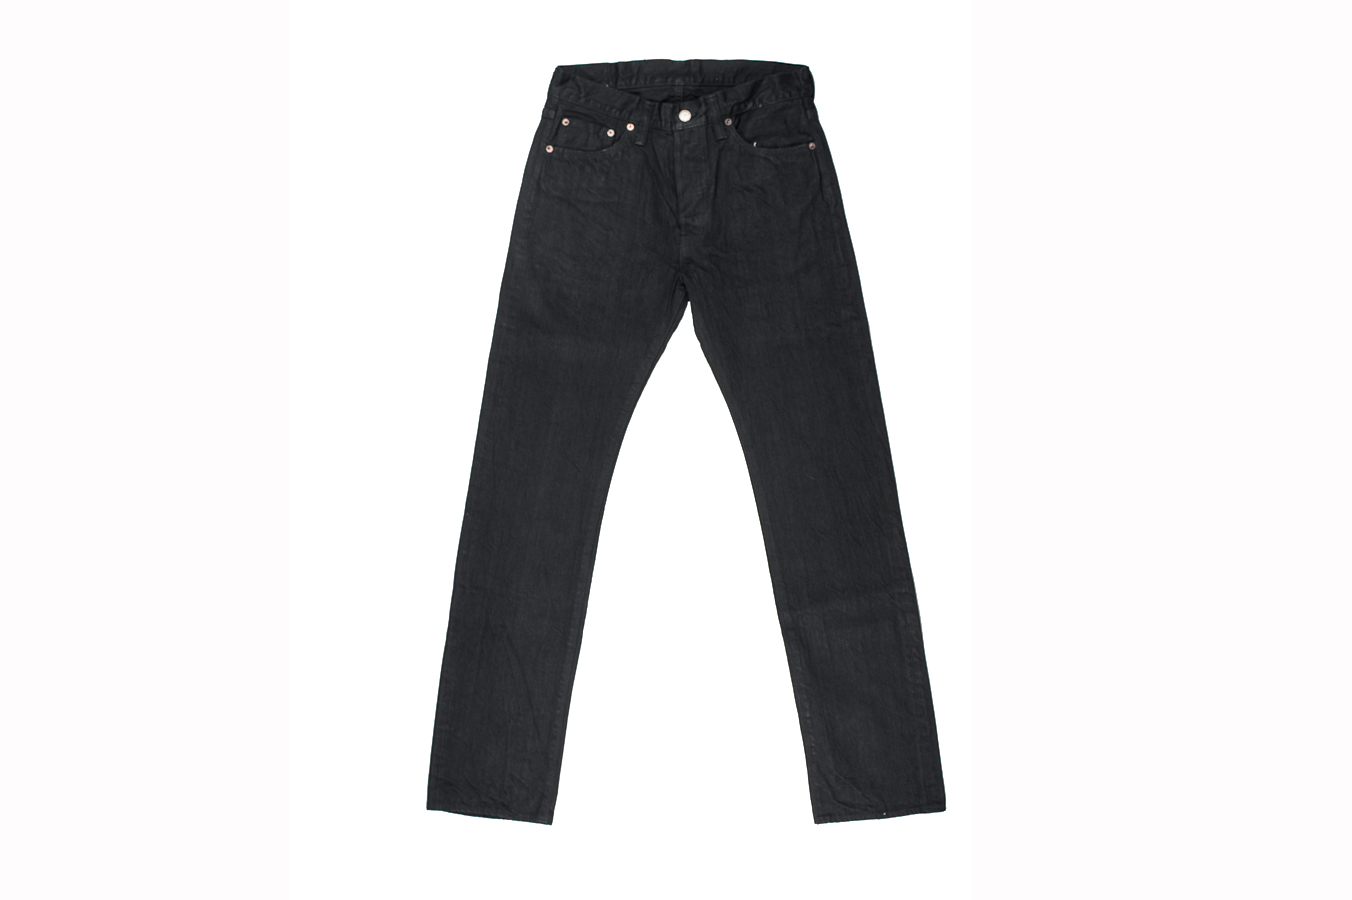 Sugar Cane Type III Black Denim Jeans - Slim - Image 5